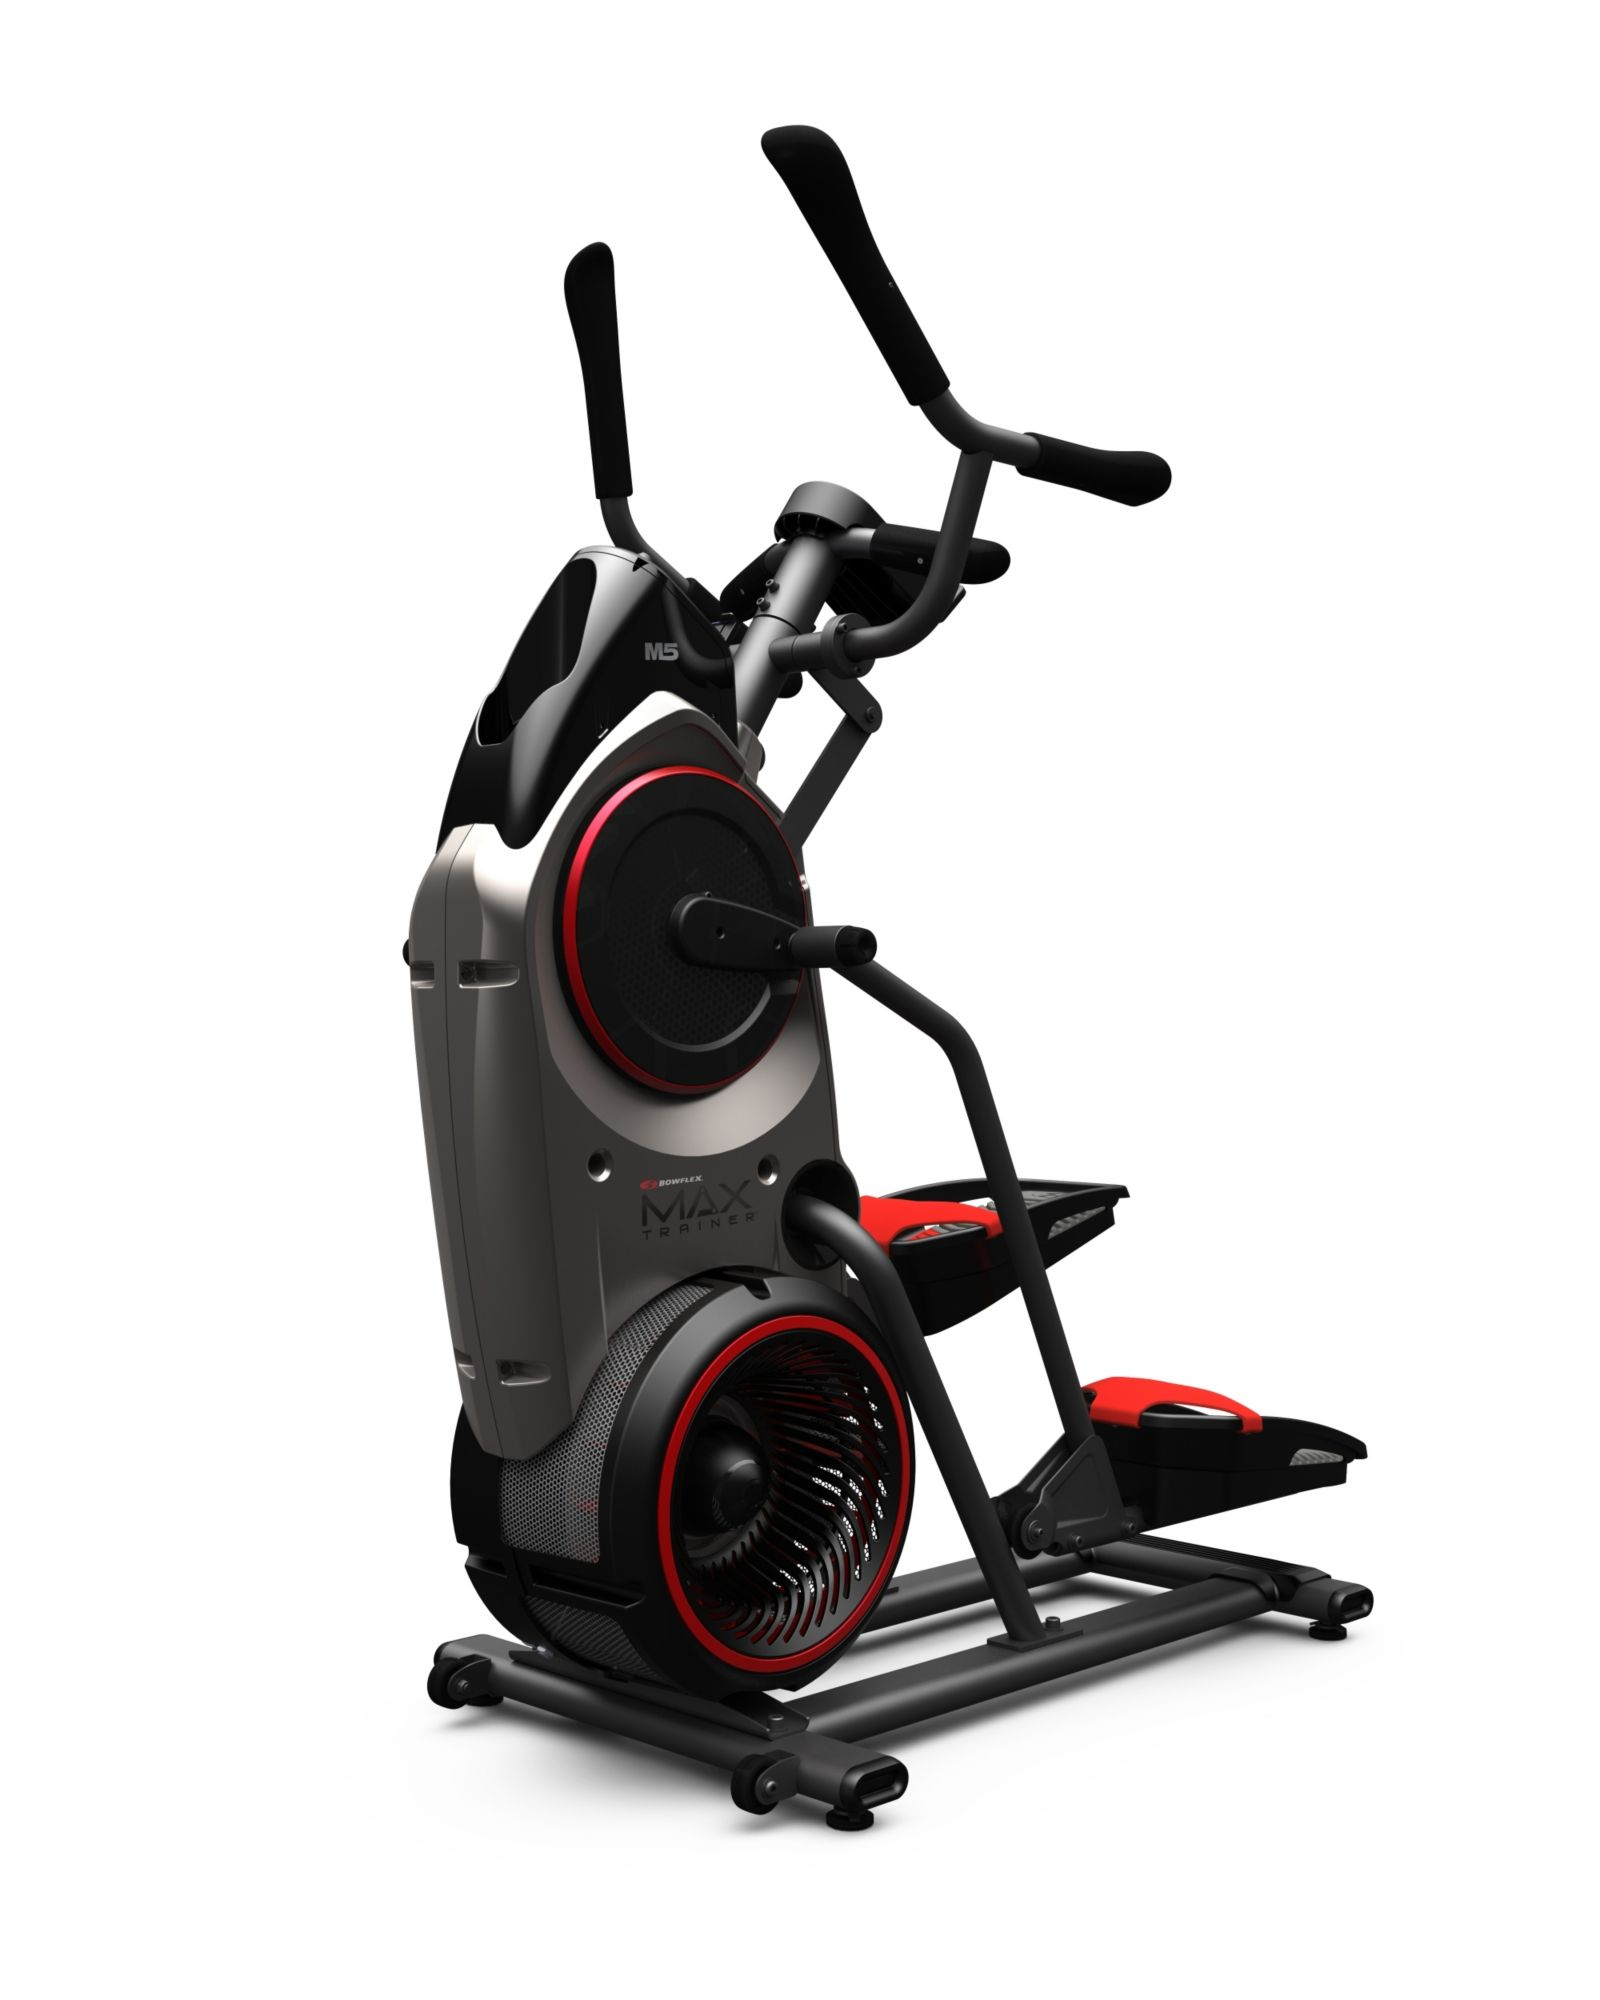 Introducing The M5 The Most Fully Featured Bowflex Max Trainer